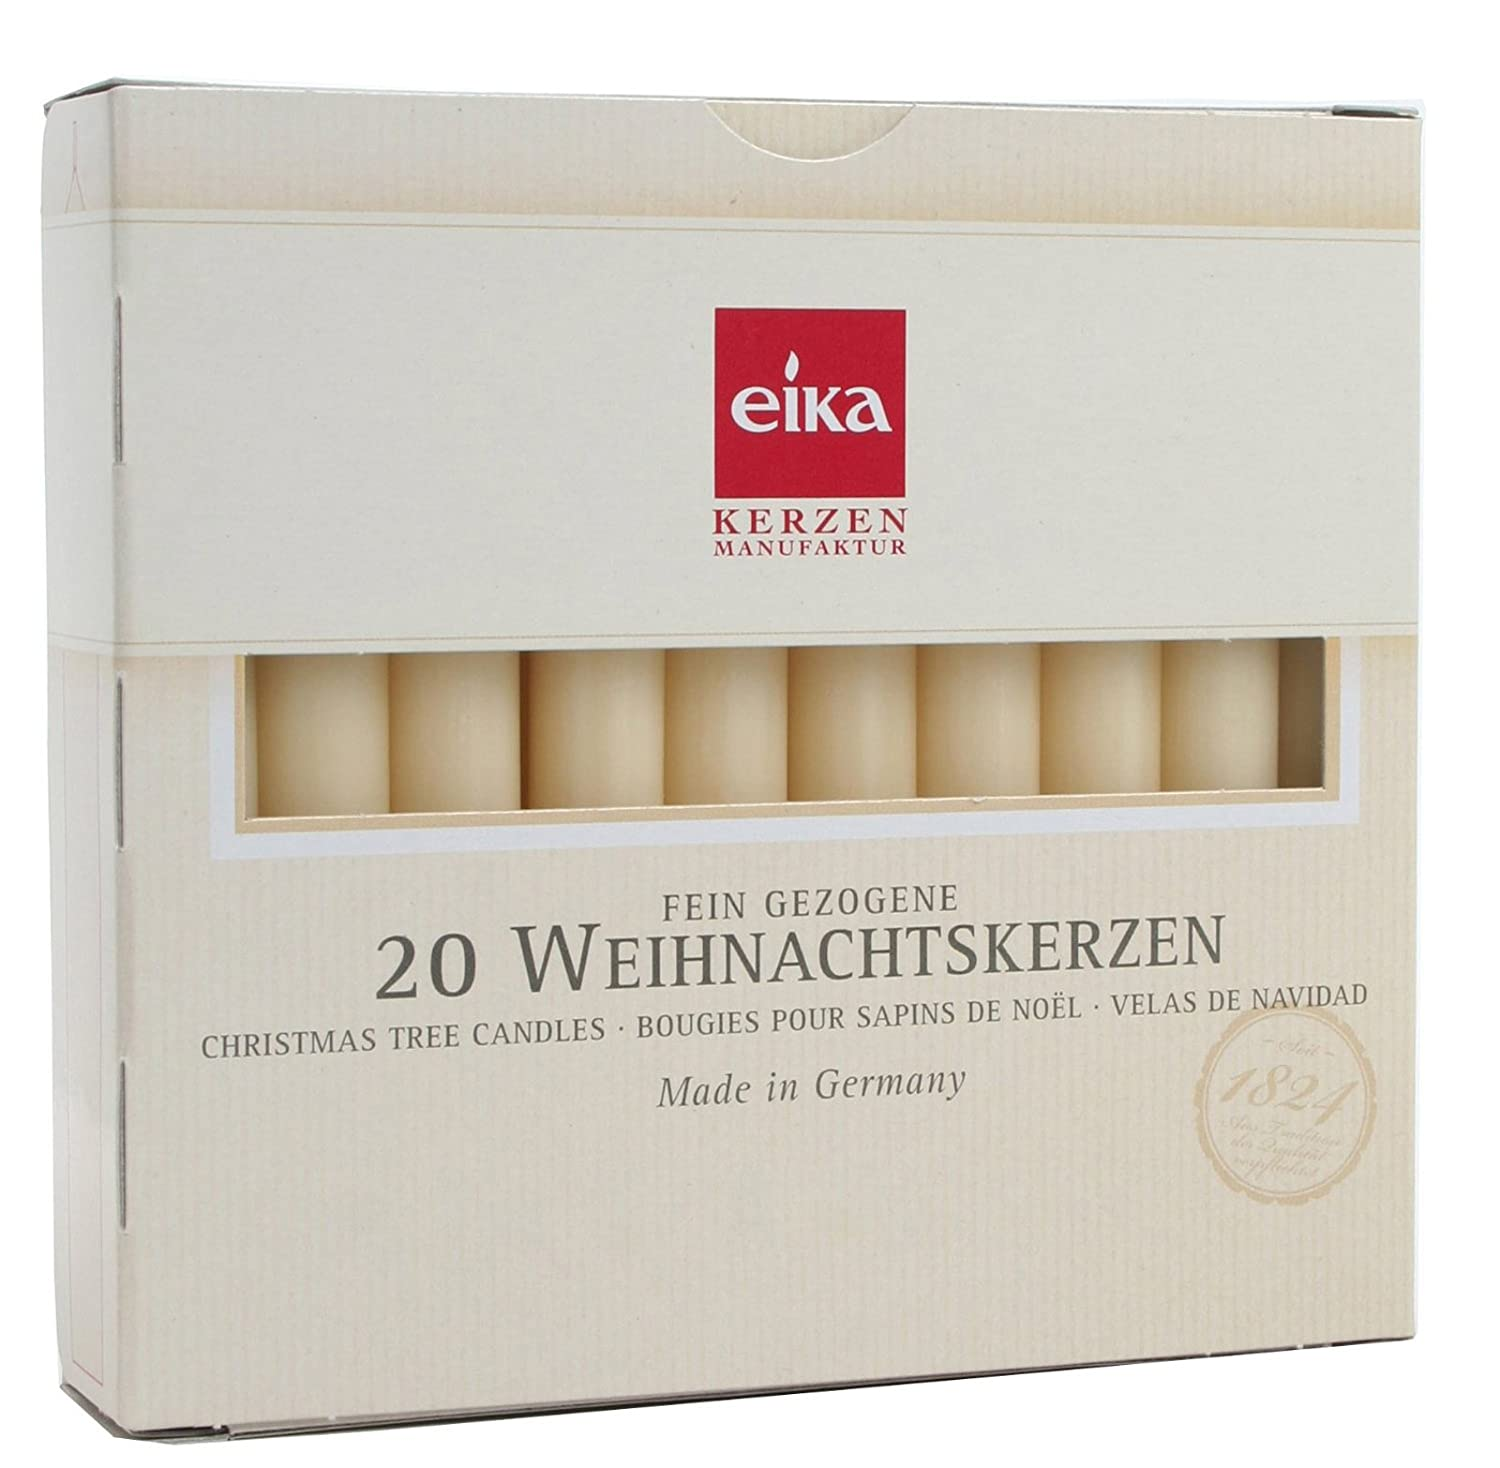 Eika Christmas Tree Candle Set 20 Pieces Made in Germany - Champagne Eika by Brubaker Baumkerzen_20er_champ_105mm